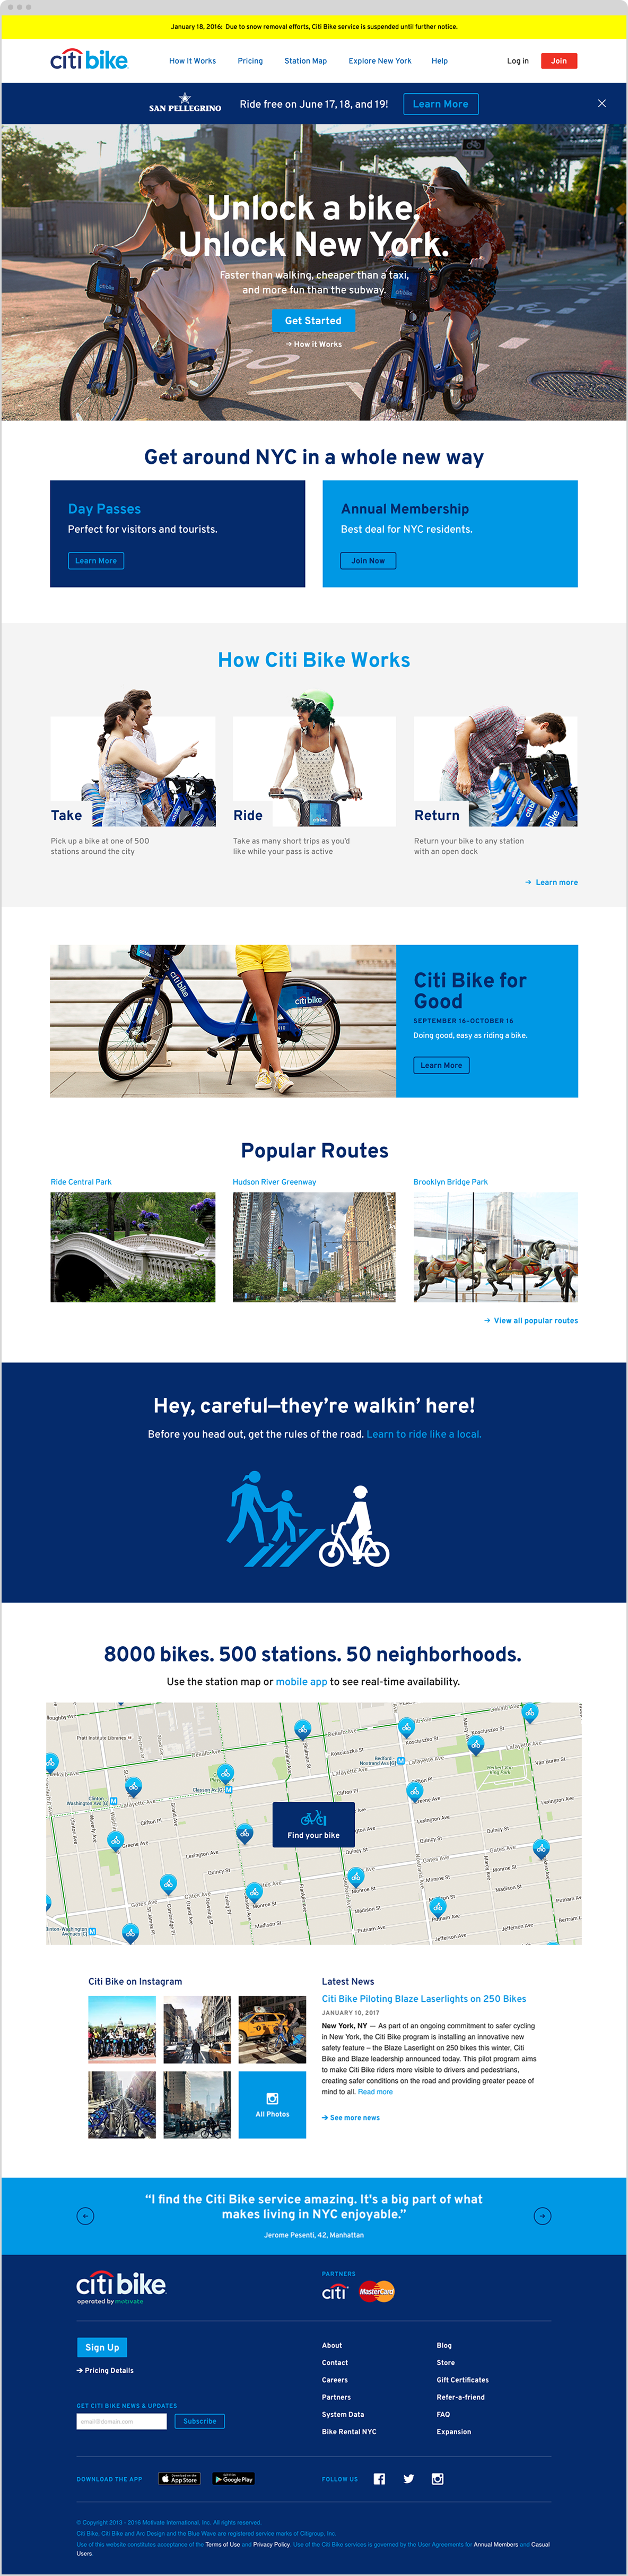 homepage for Citi Bike